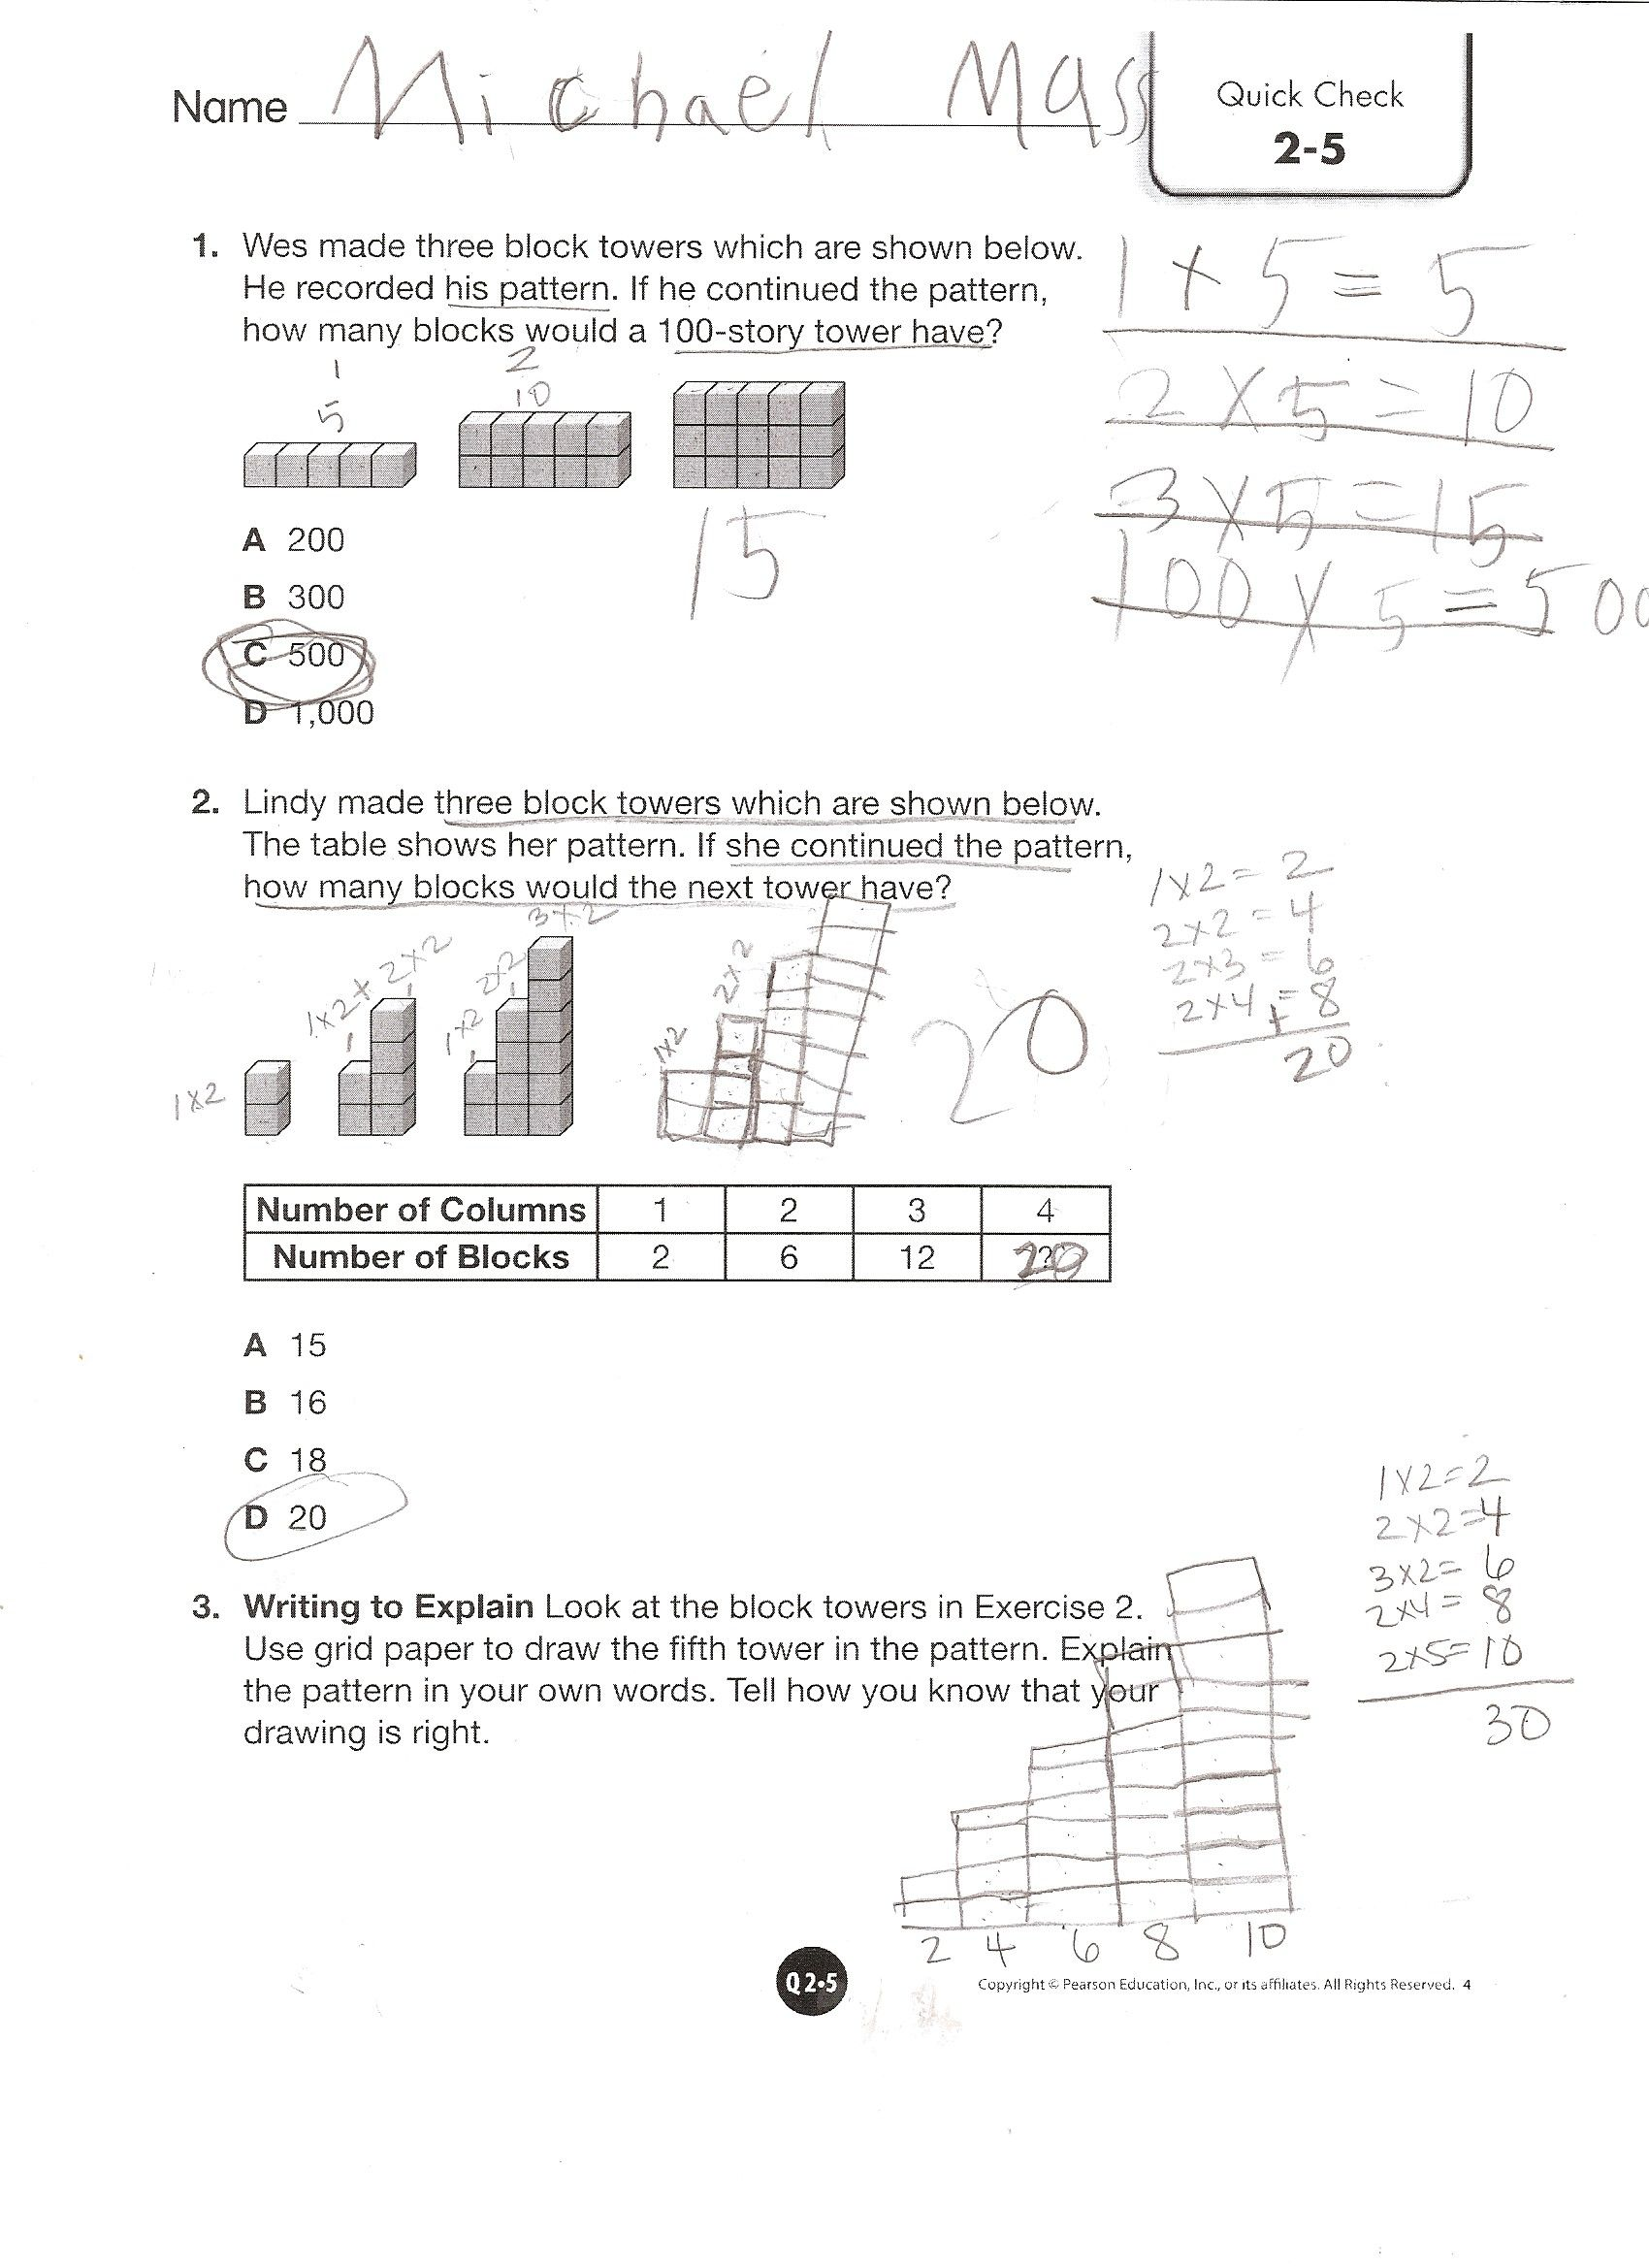 Envision Math Grade 4 Workbook Pdf